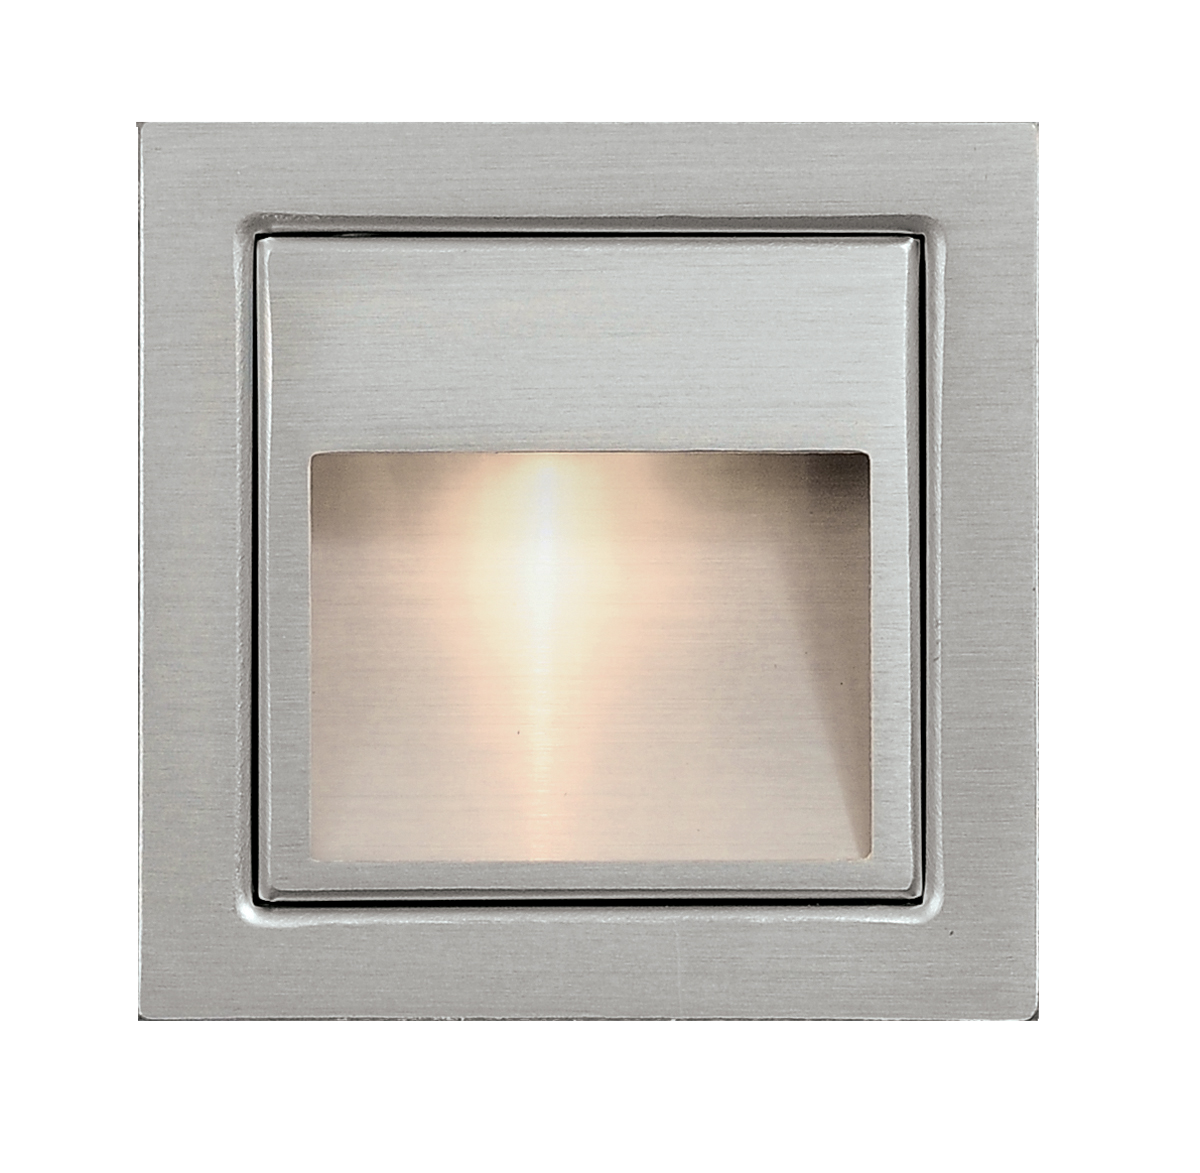 Step LED Master Wall Recessed